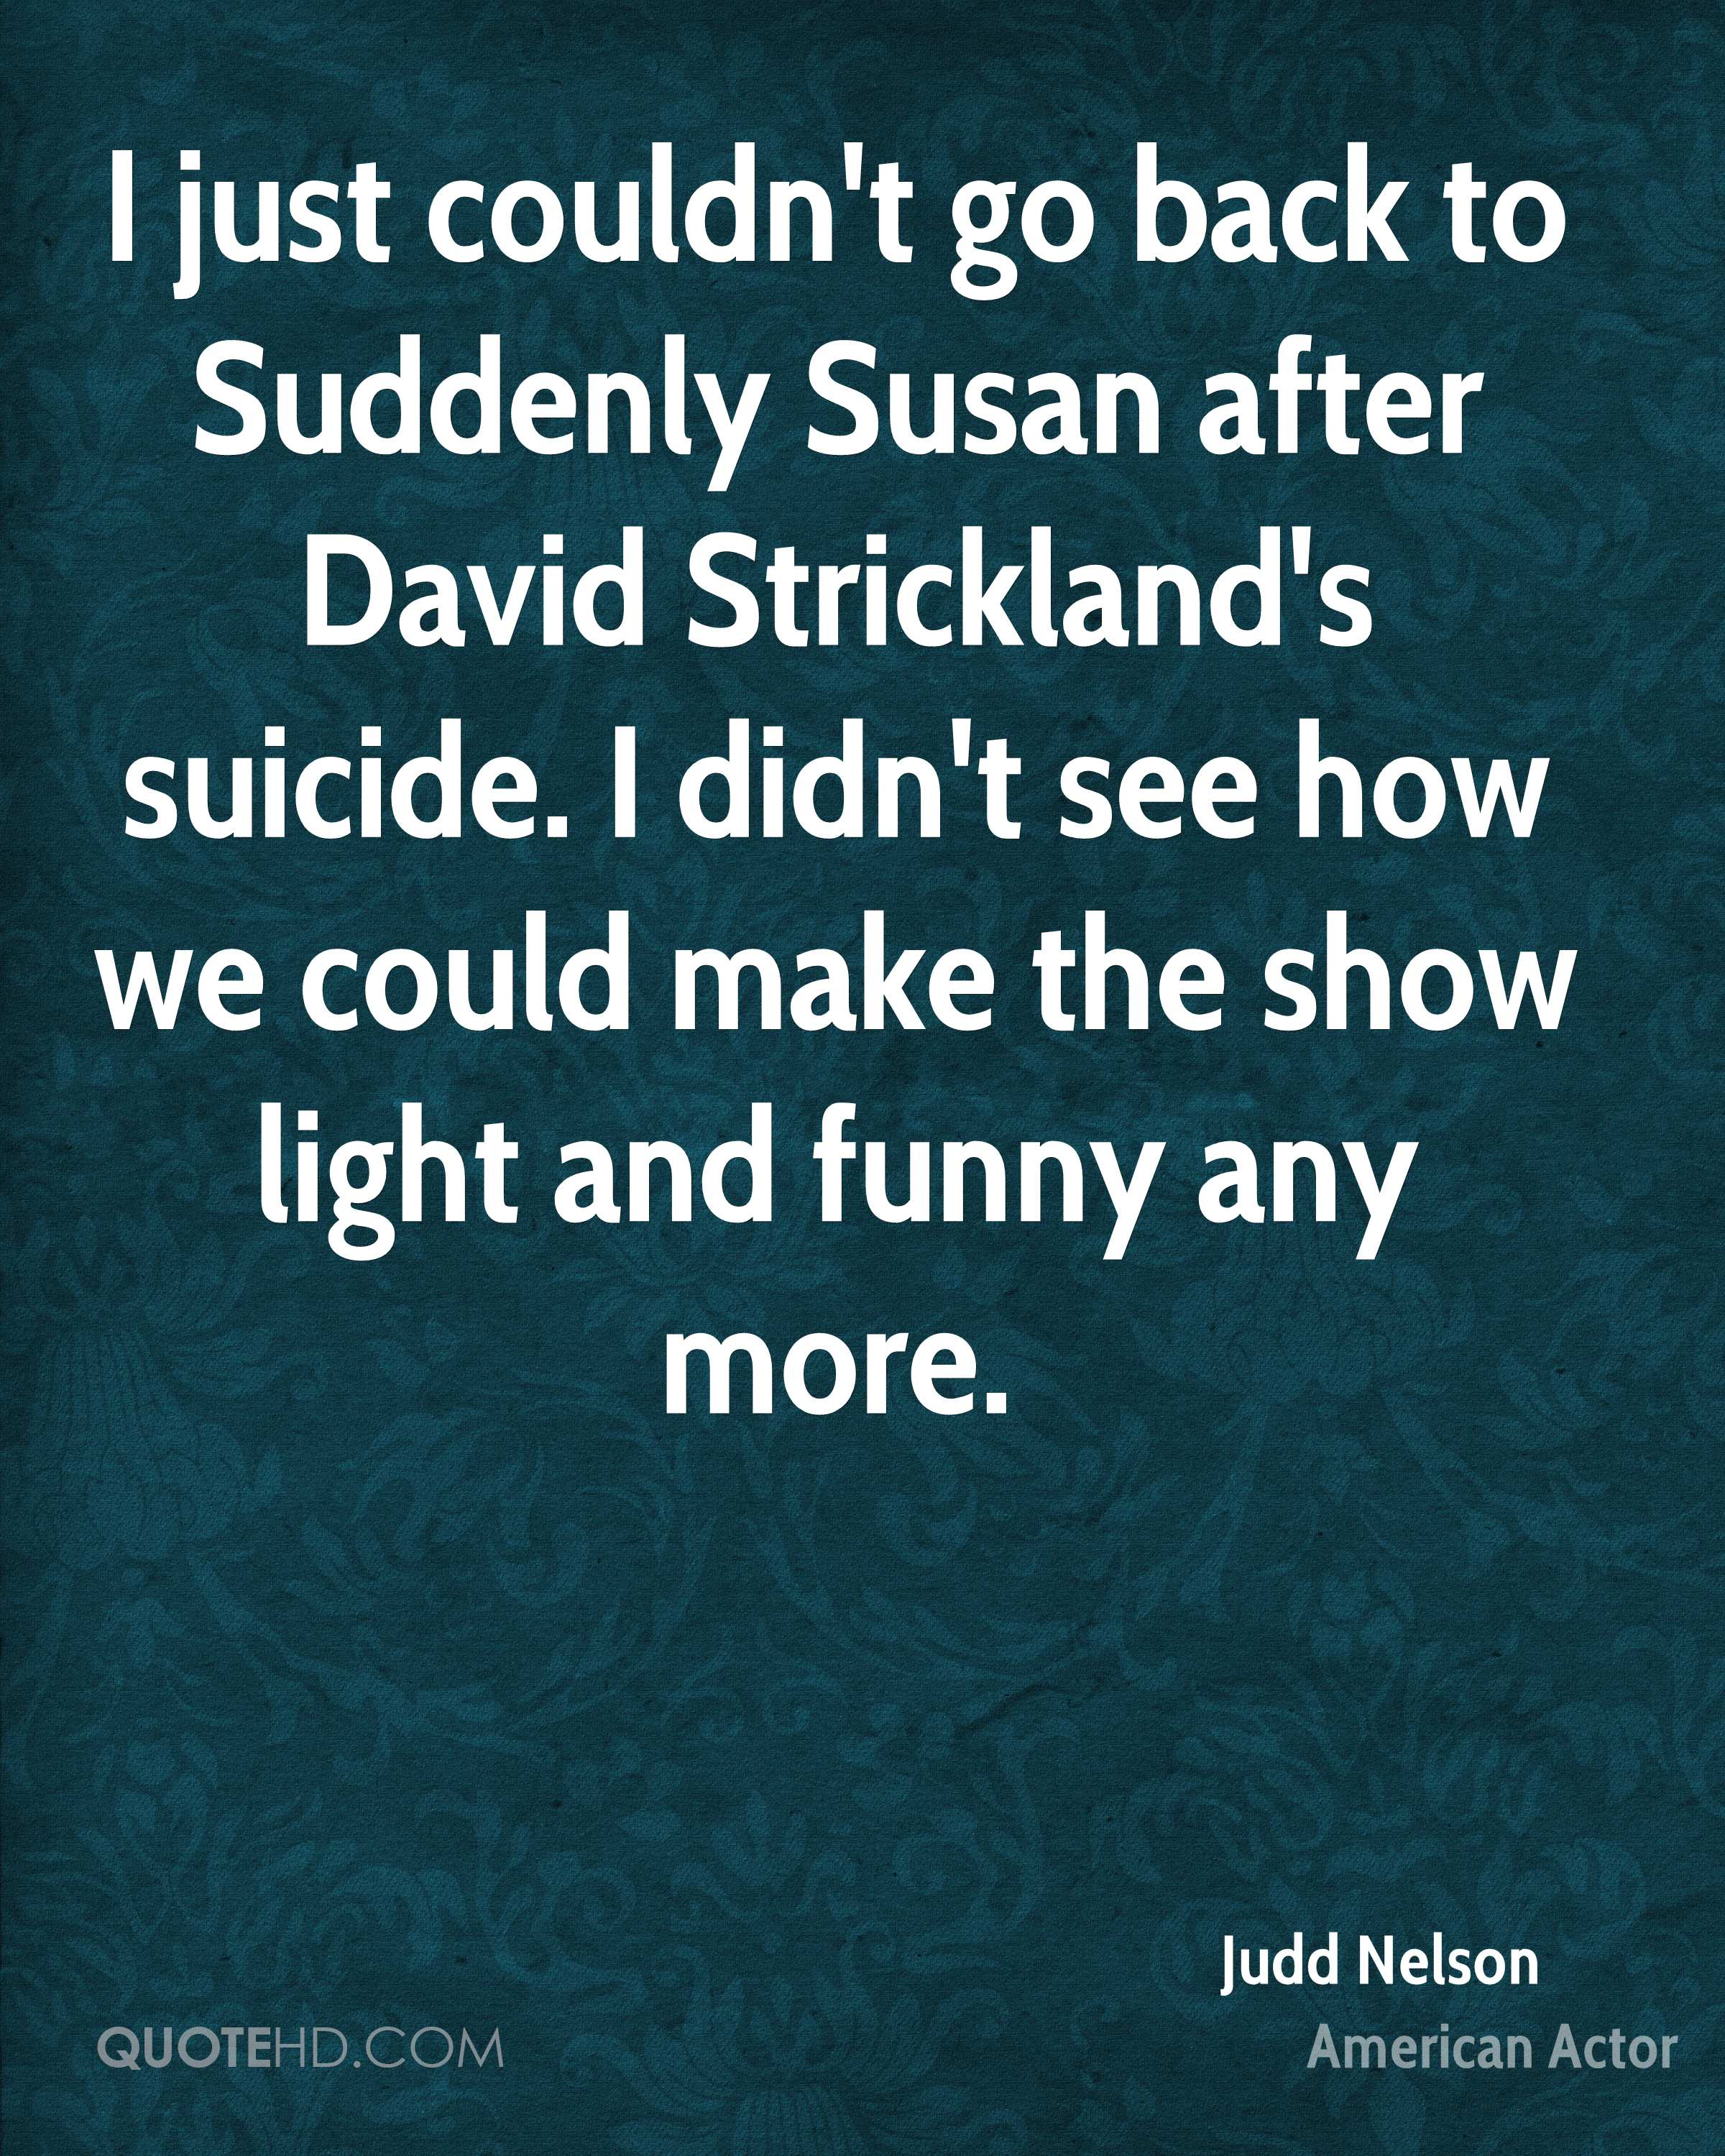 I just couldn't go back to Suddenly Susan after David Strickland's suicide. I didn't see how we could make the show light and funny any more.